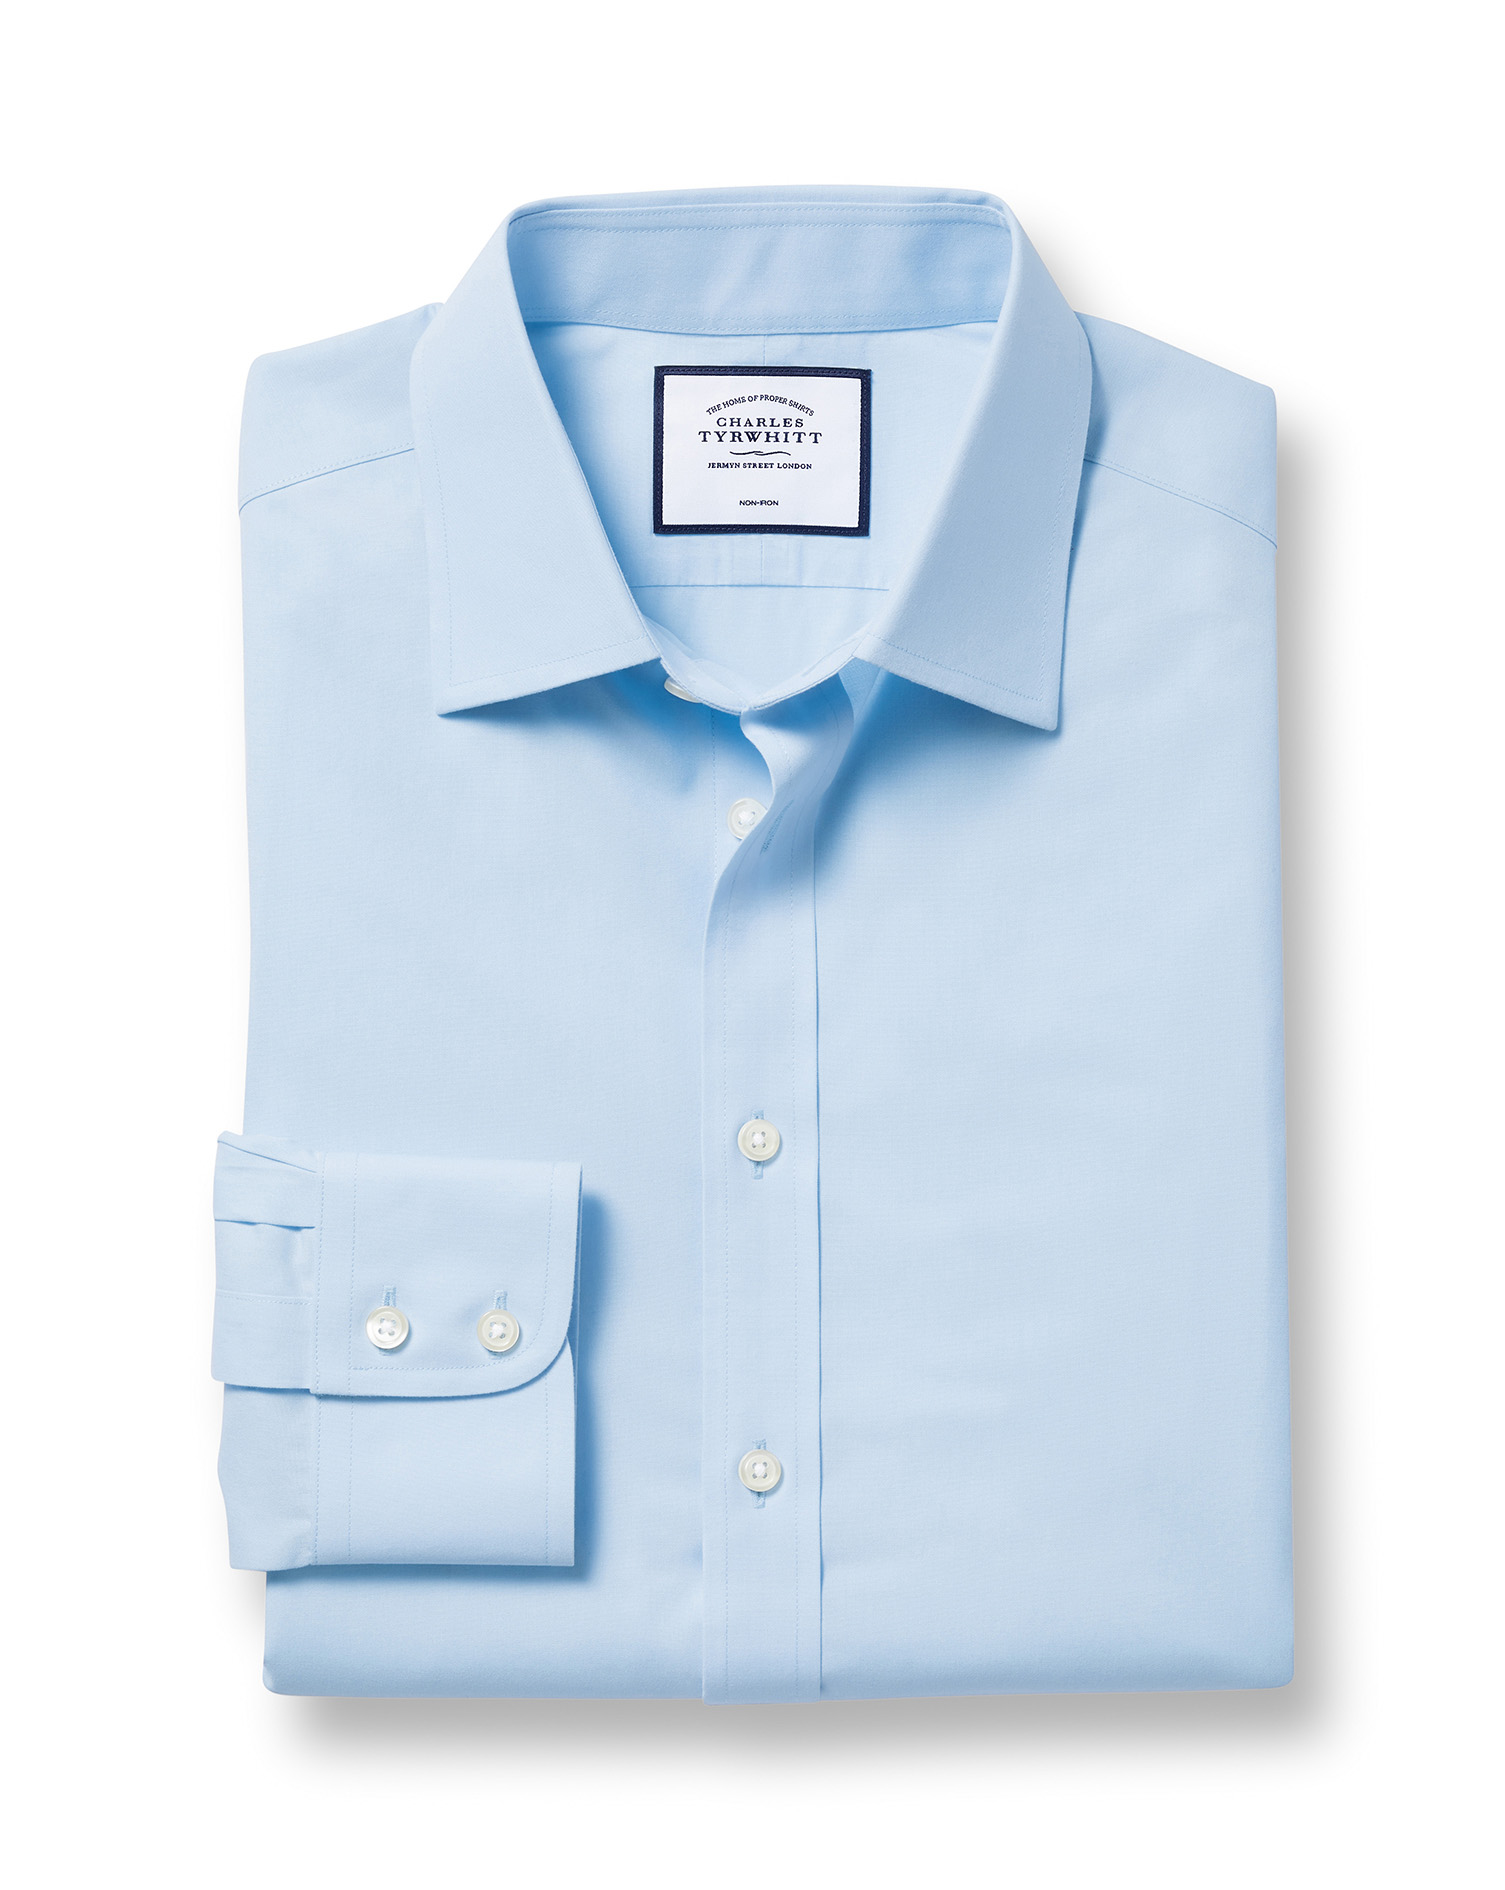 Slim Fit Sky Blue Non-Iron Poplin Cotton Formal Shirt Double Cuff Size 16.5/33 by Charles Tyrwhitt